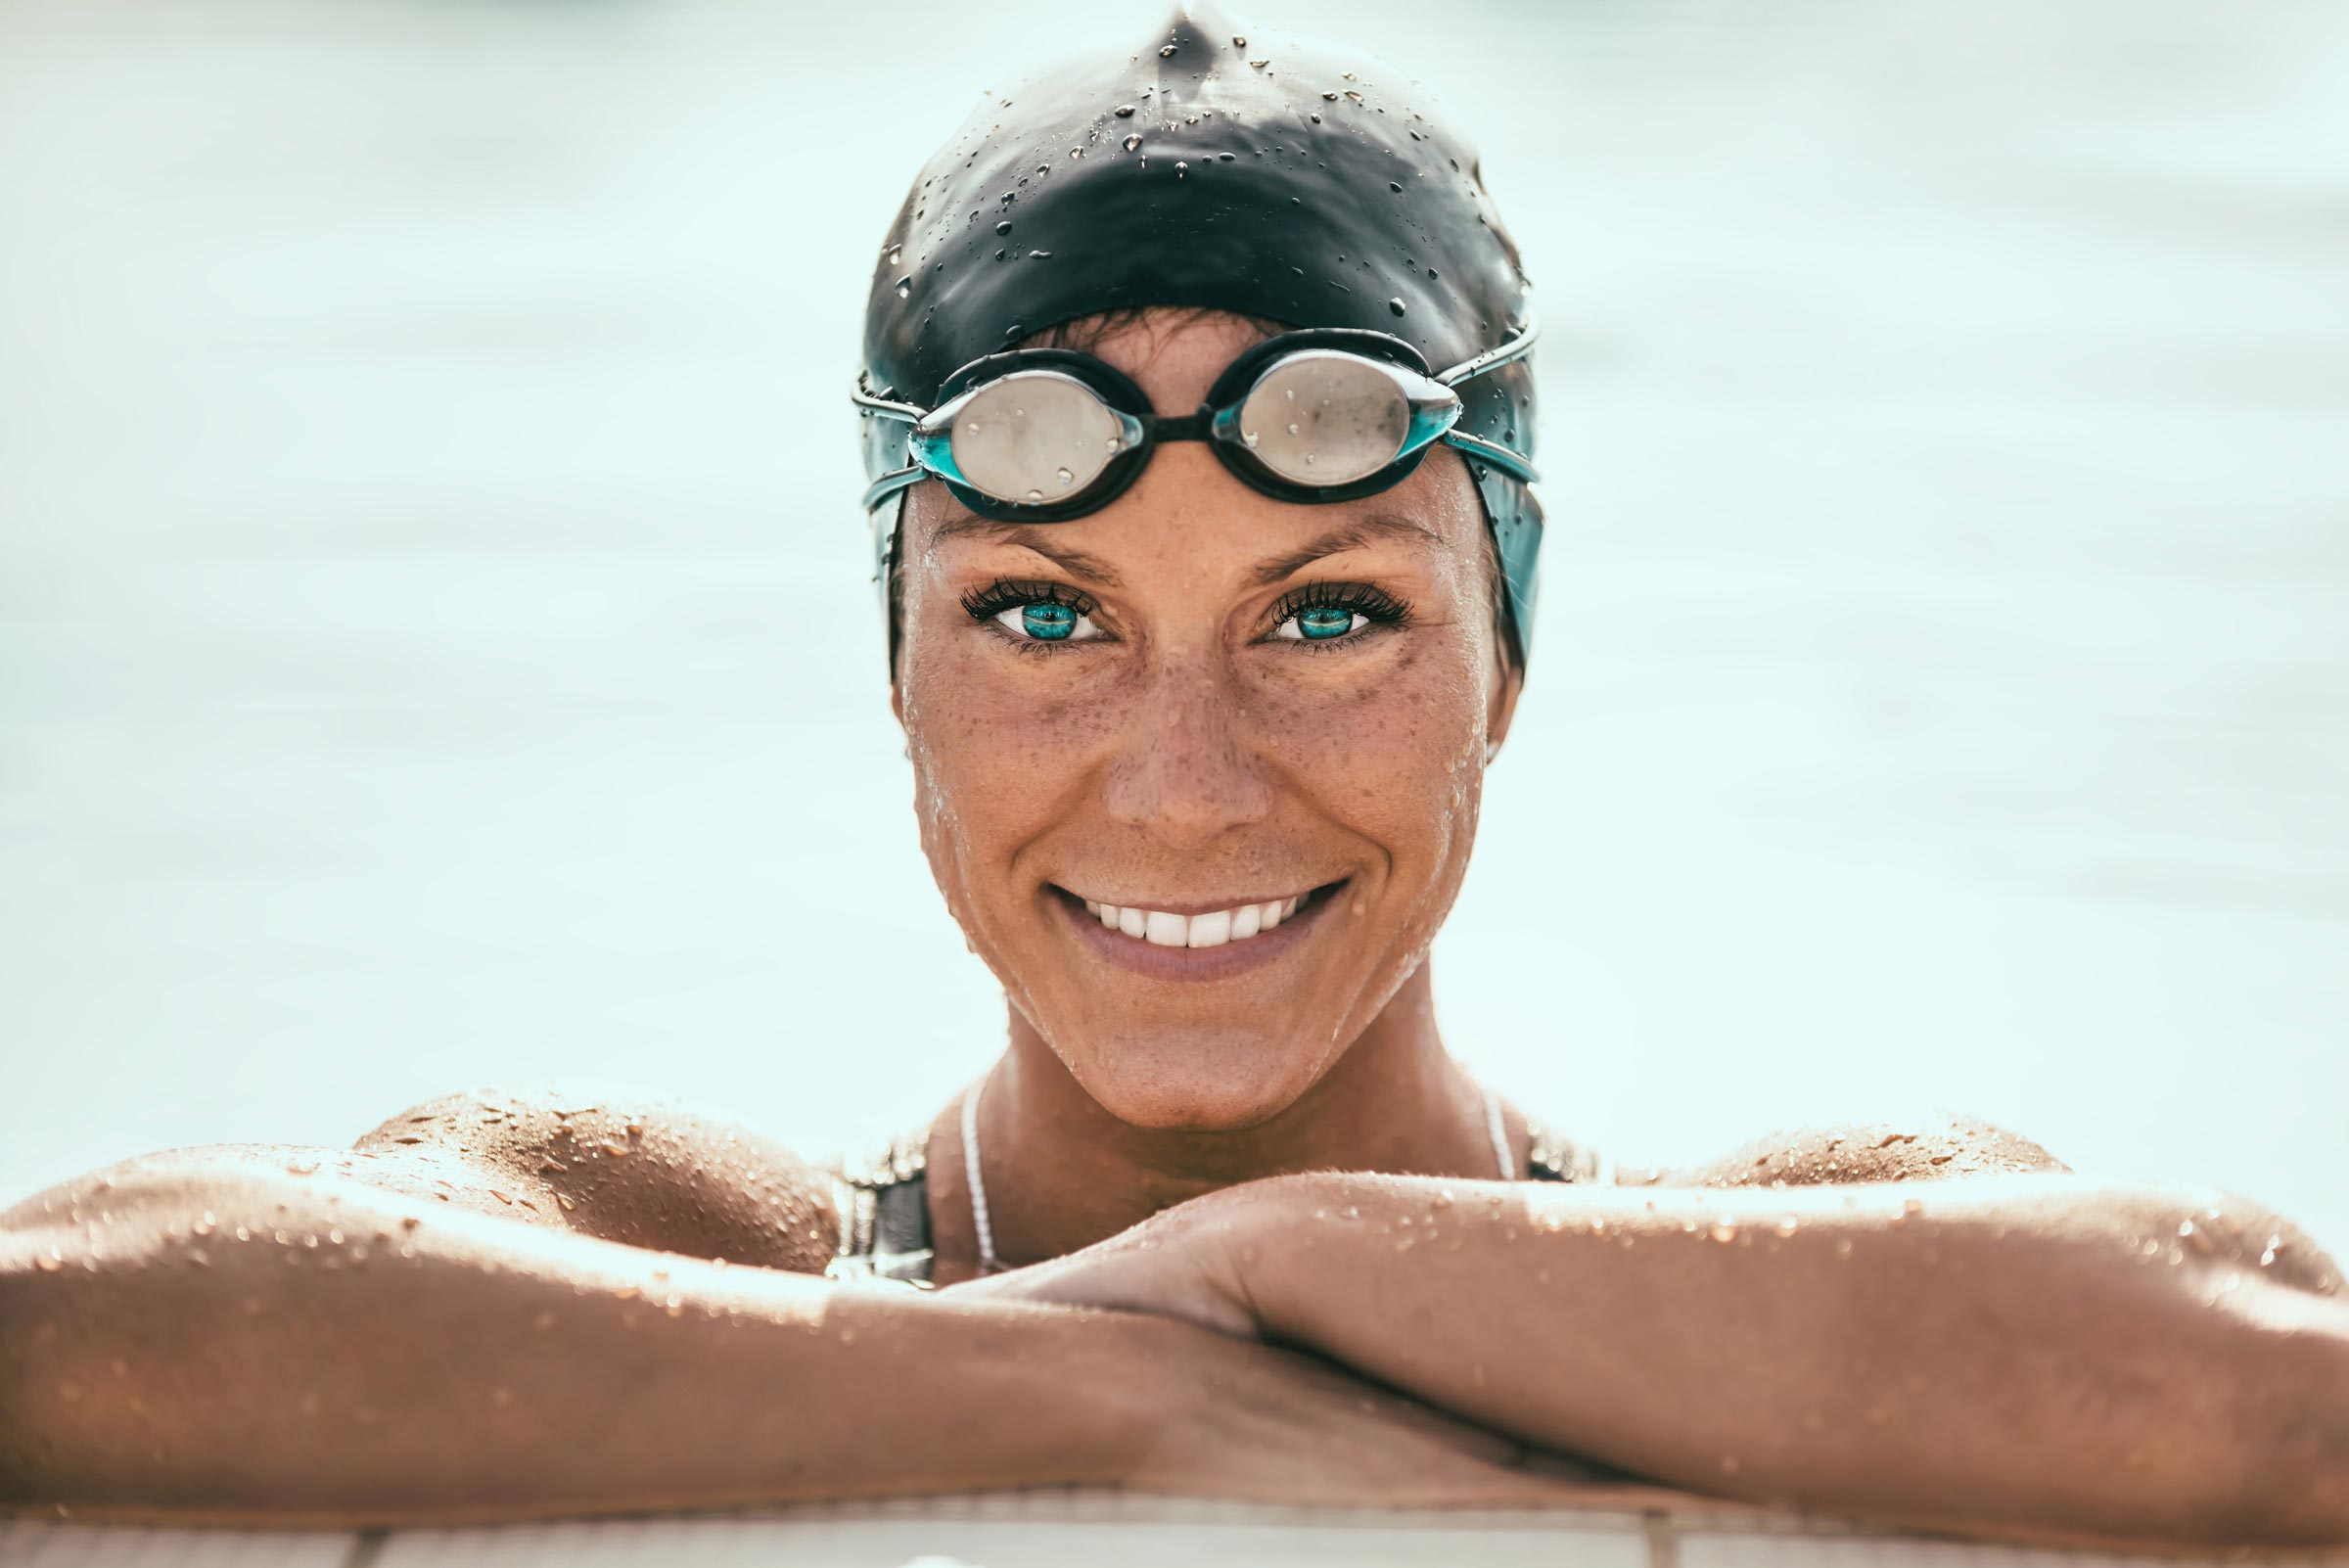 A woman swimmer rests at the edge of a pool with her goggles up, in between training.